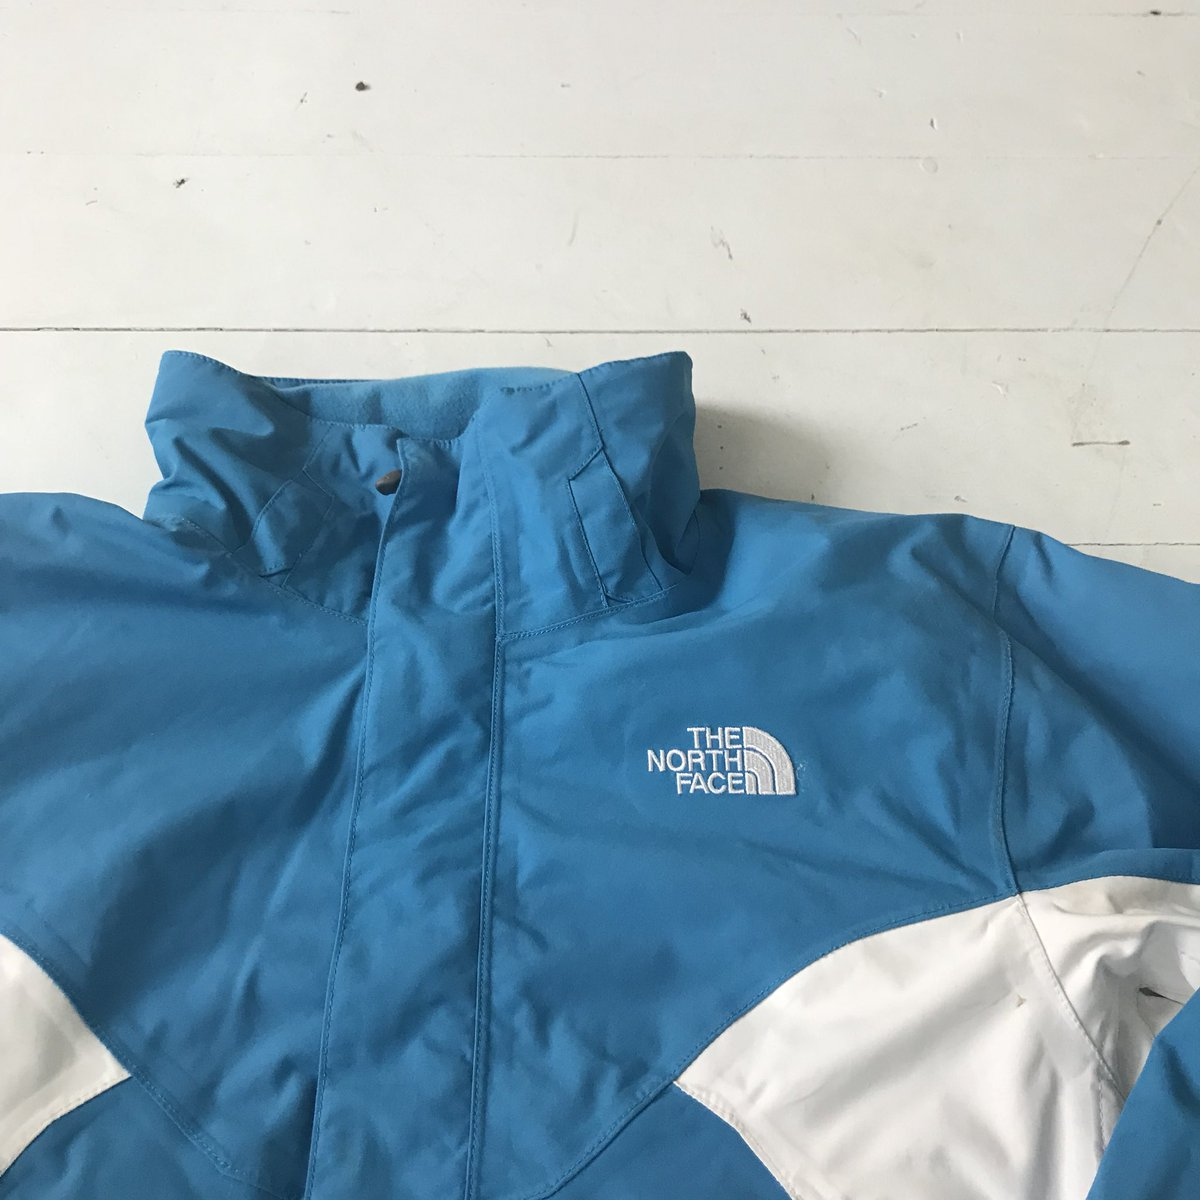 Apex Store On Twitter Blue White North Face Hyvent Jacket Condition 8 10 Size M Price 50 Northface Thenorthface Jacket Hyvent Outerwear Menswear Womenswear Unisex Clothing Fashion Streetwear Vintage